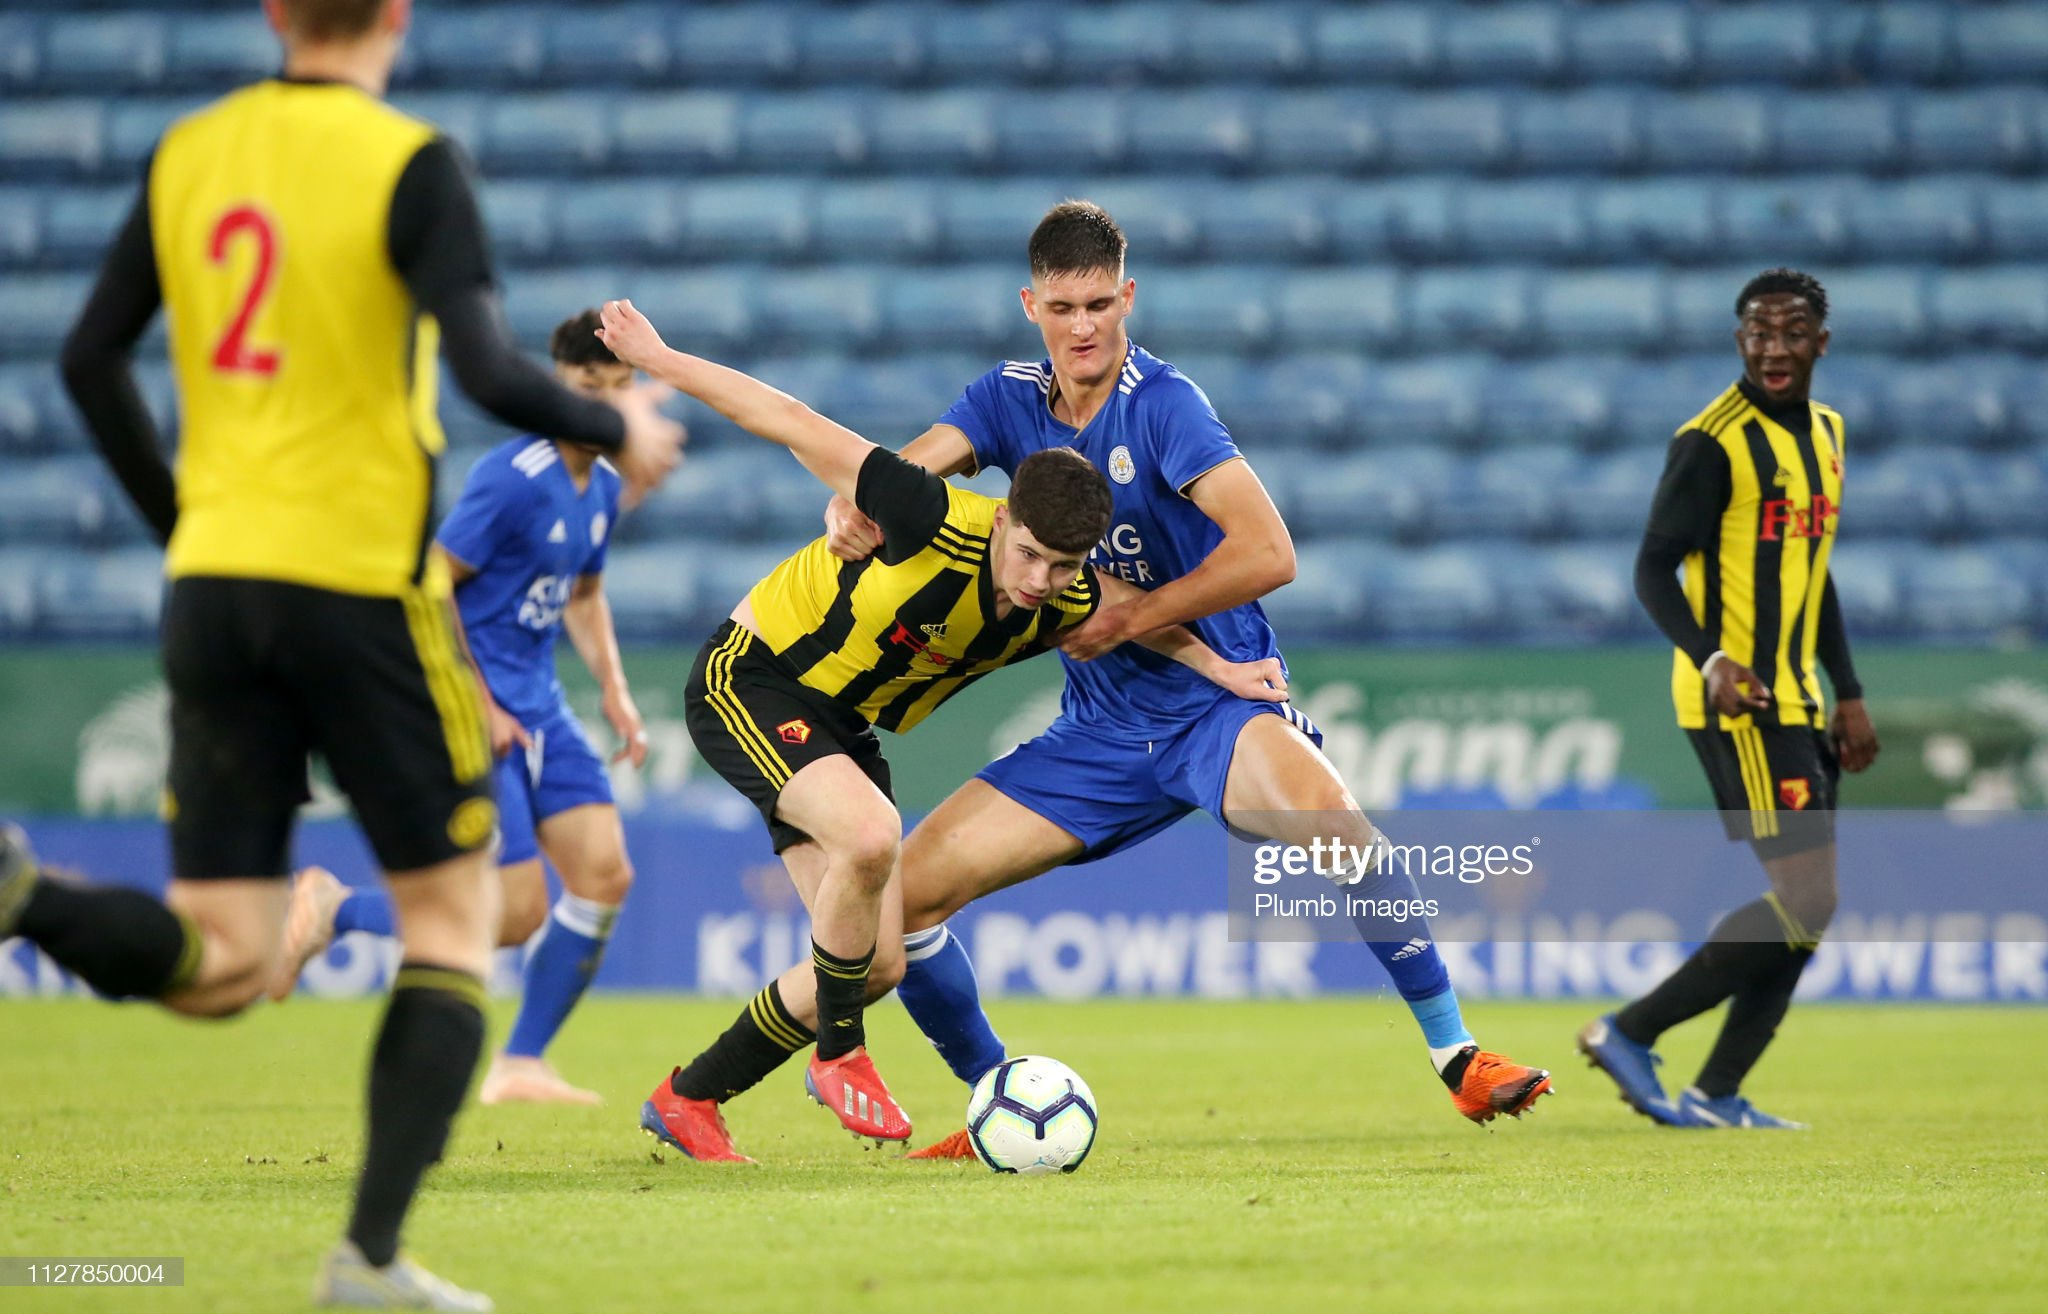 Leicester City v Watford: FA Youth Cup Quarter Final : News Photo